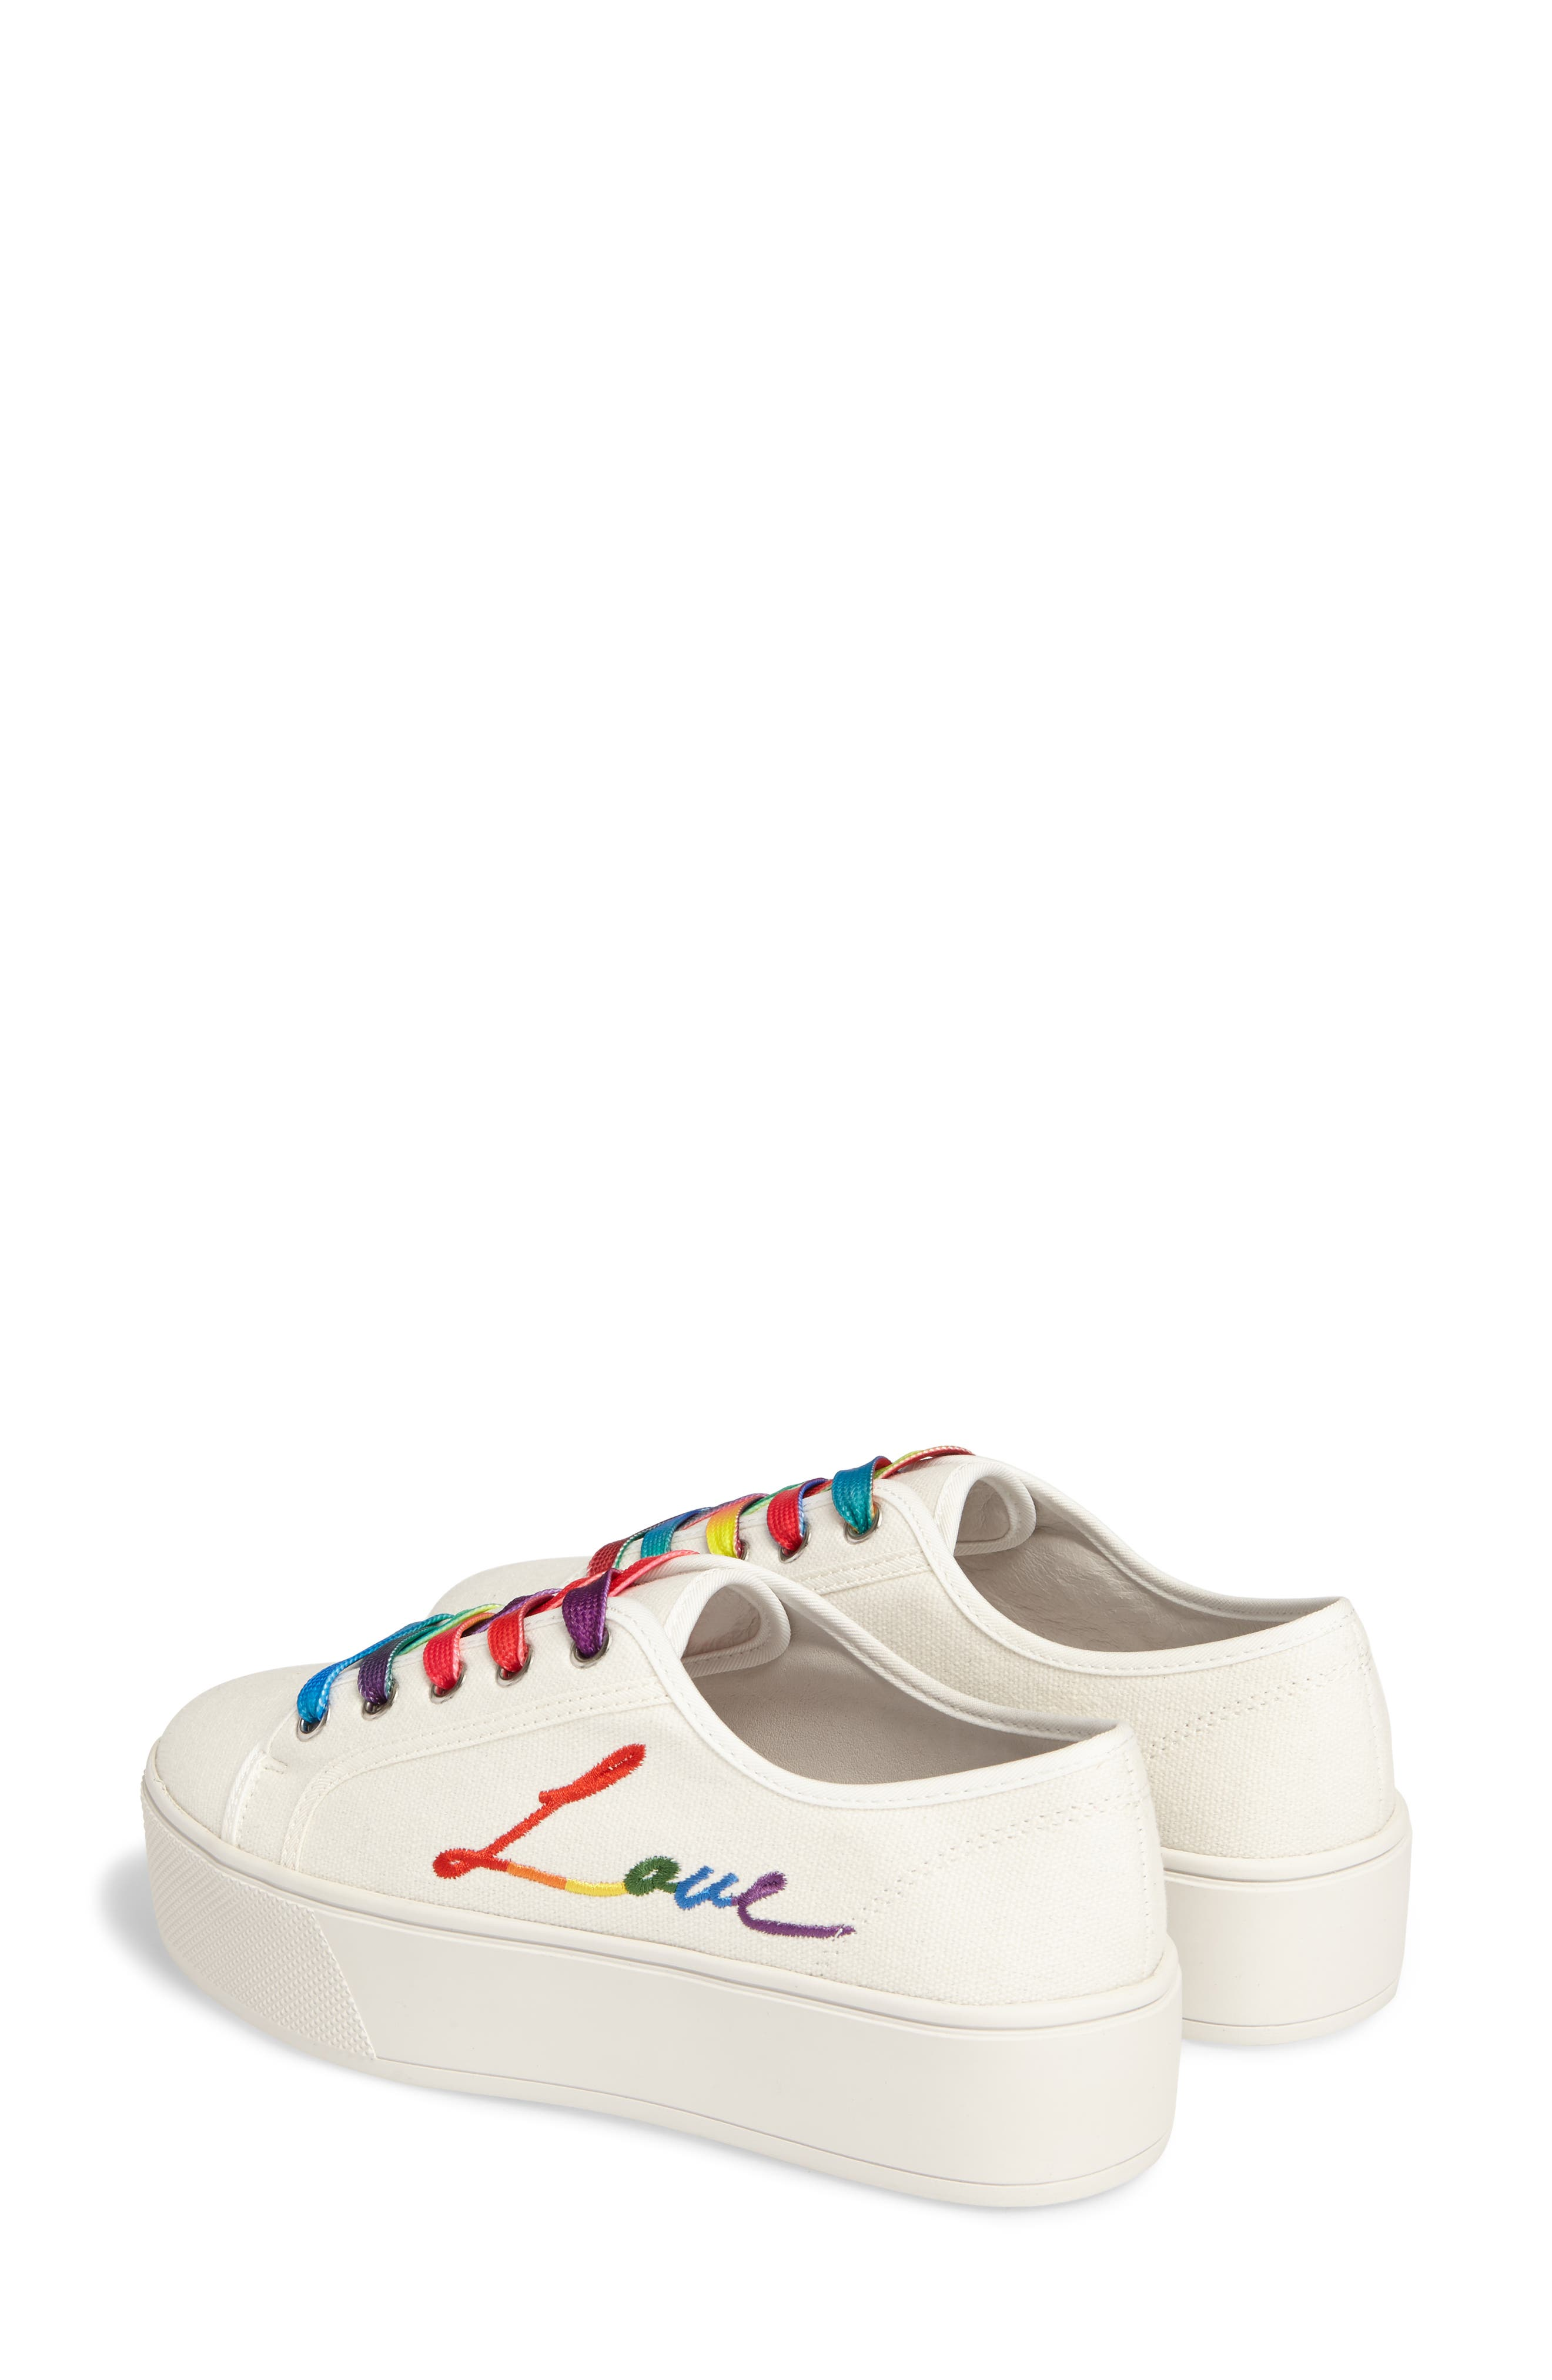 Fink Platform Sneaker,                             Alternate thumbnail 4, color,